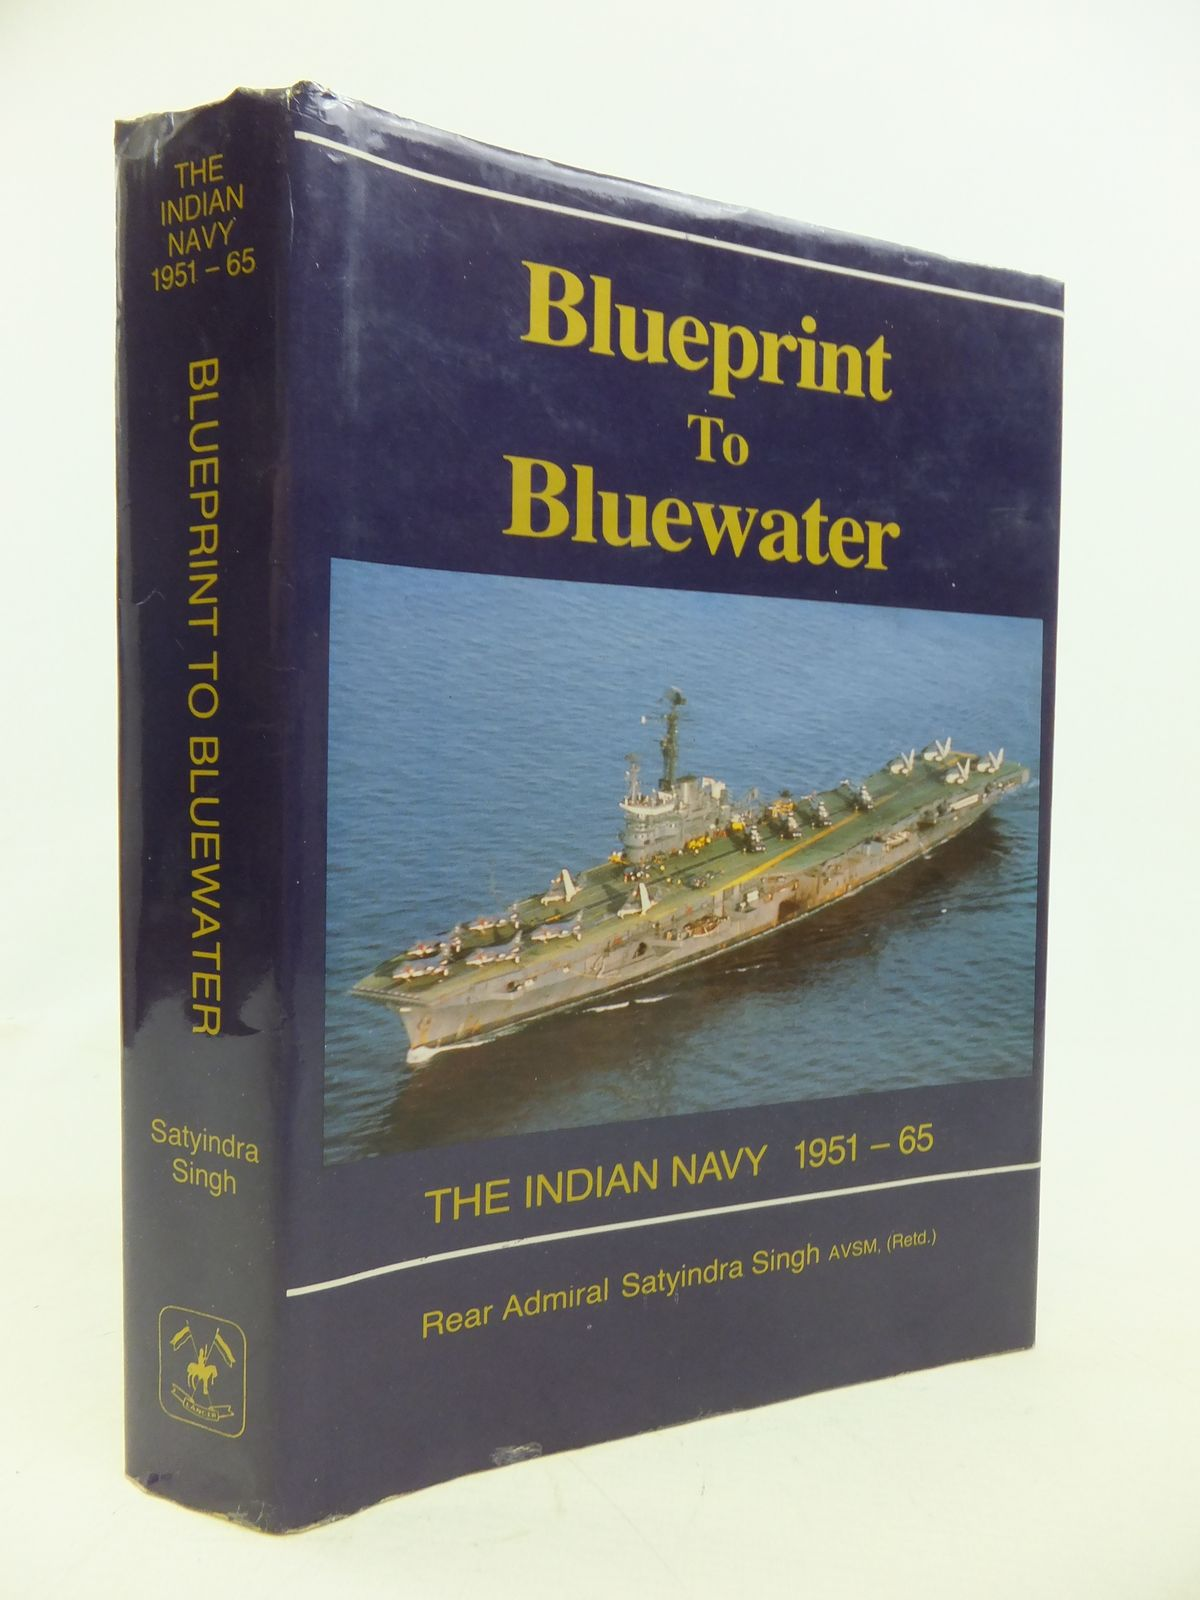 Blueprint to bluewater the indian navy 1951 65 written by singh photo of blueprint to bluewater the indian navy 1951 65 written by singh satyindra malvernweather Image collections